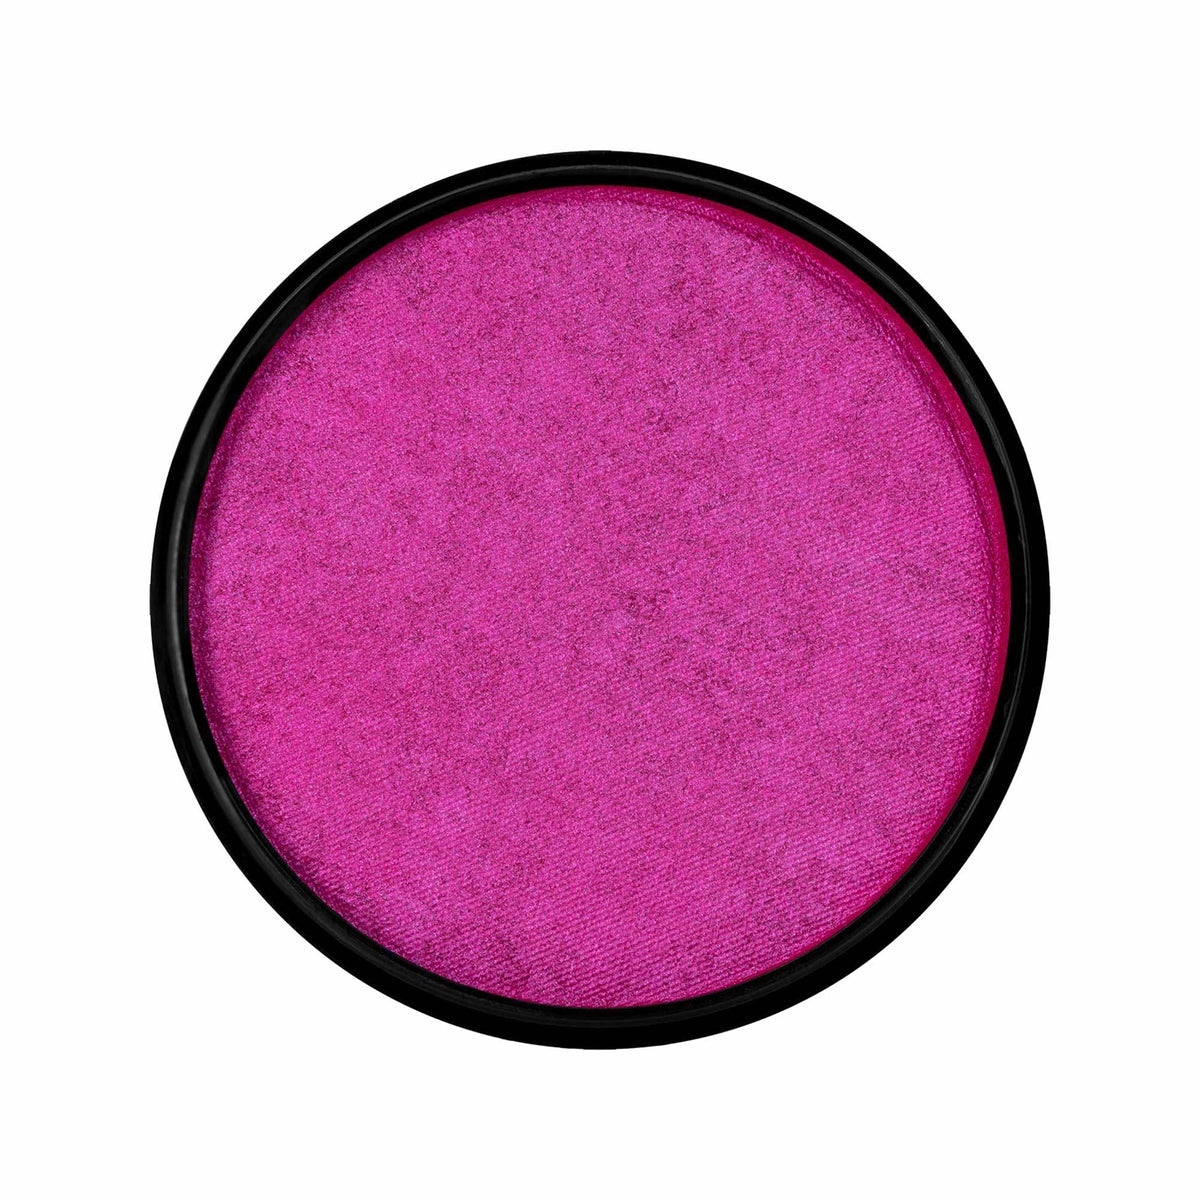 Mehron Paradise AQ Face & Body Professional Makeup - 40g